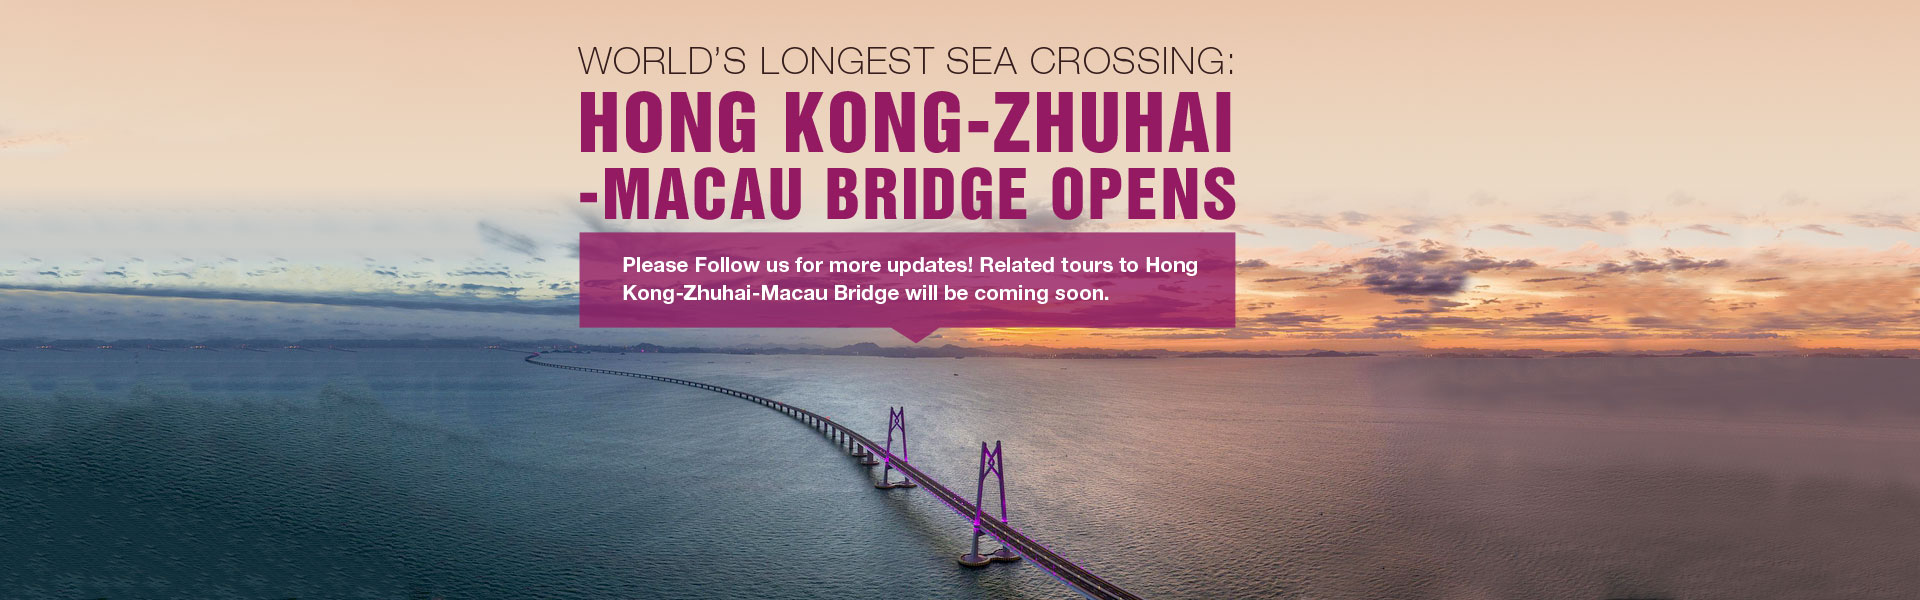 World's Longest Sea Crossing: Hong Kong-Zhuhai-Macau Bridge Opens